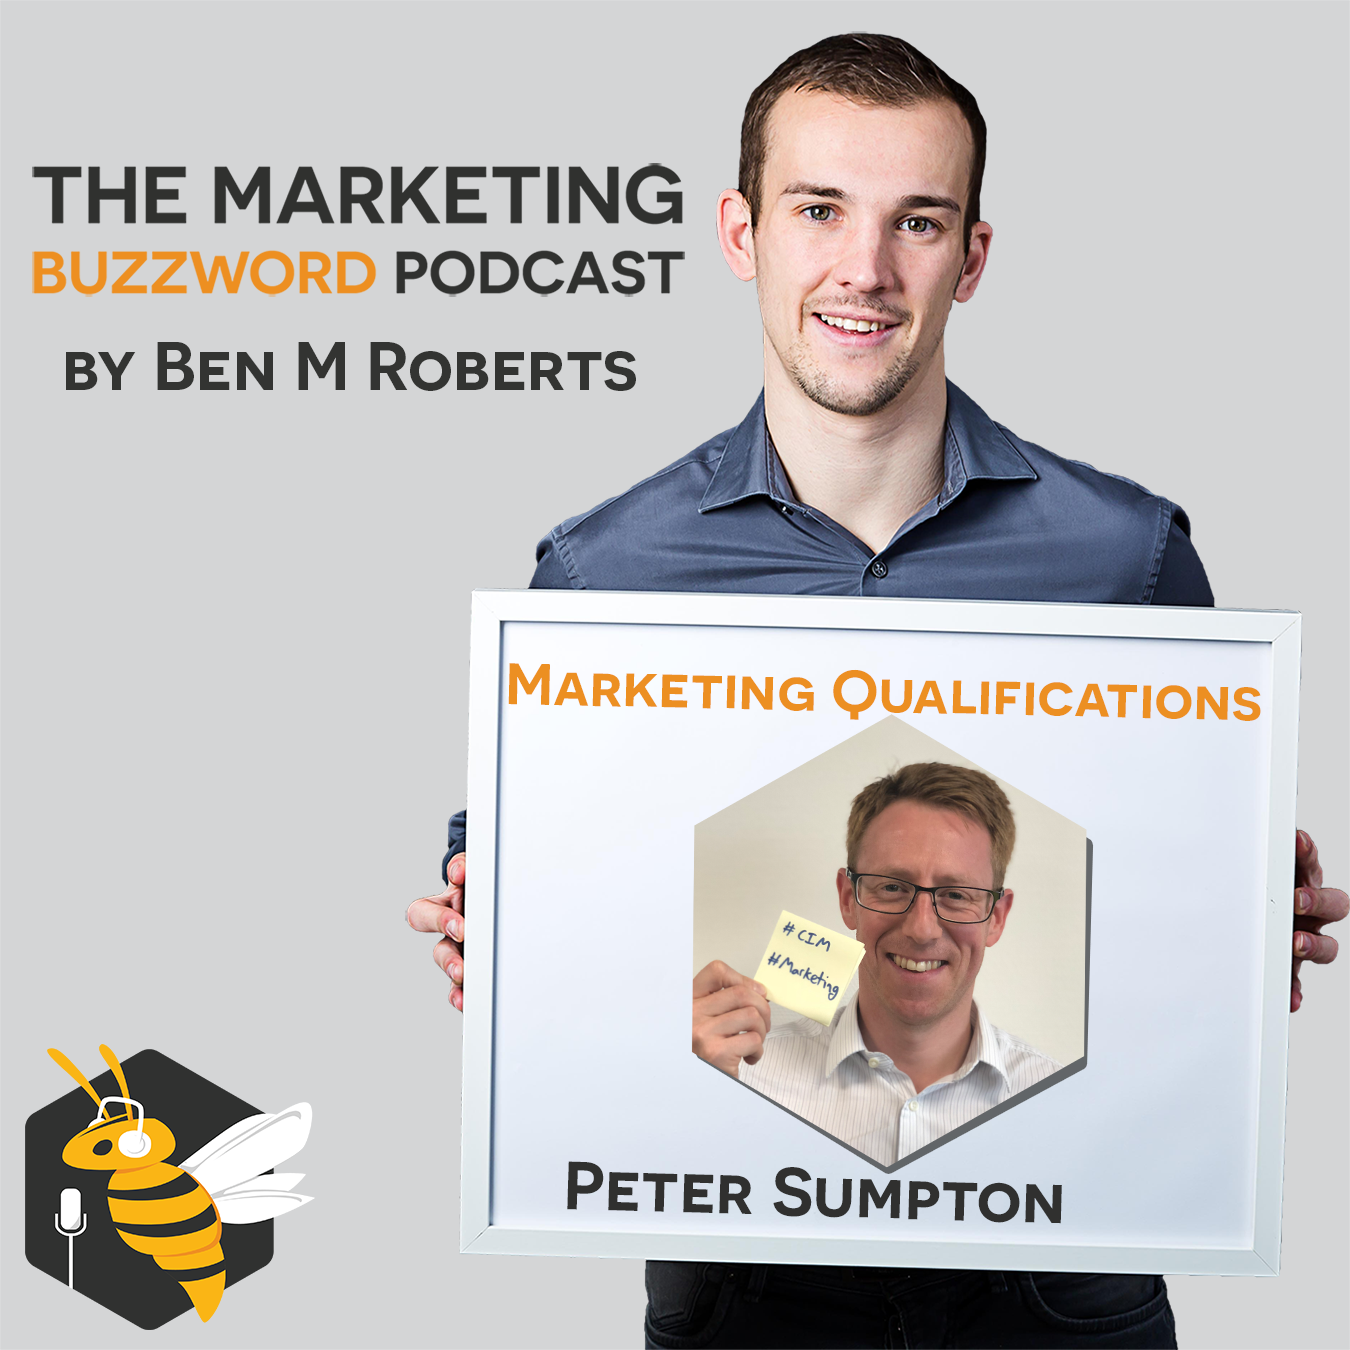 Marketing Qualifications - Are marketing qualifications still relevant? What is the point in spending the time to get a qualification? Should you be working in marketing without one?